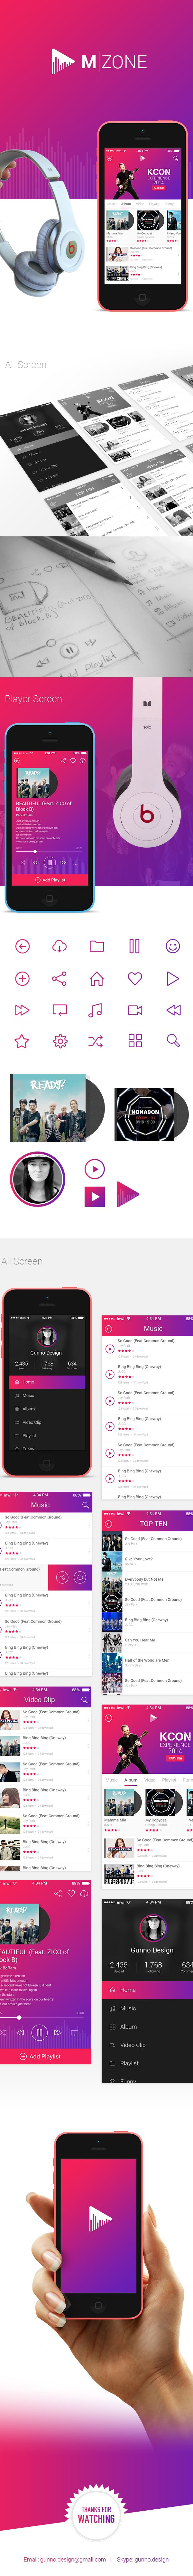 M-ZONE Music on App Design Served